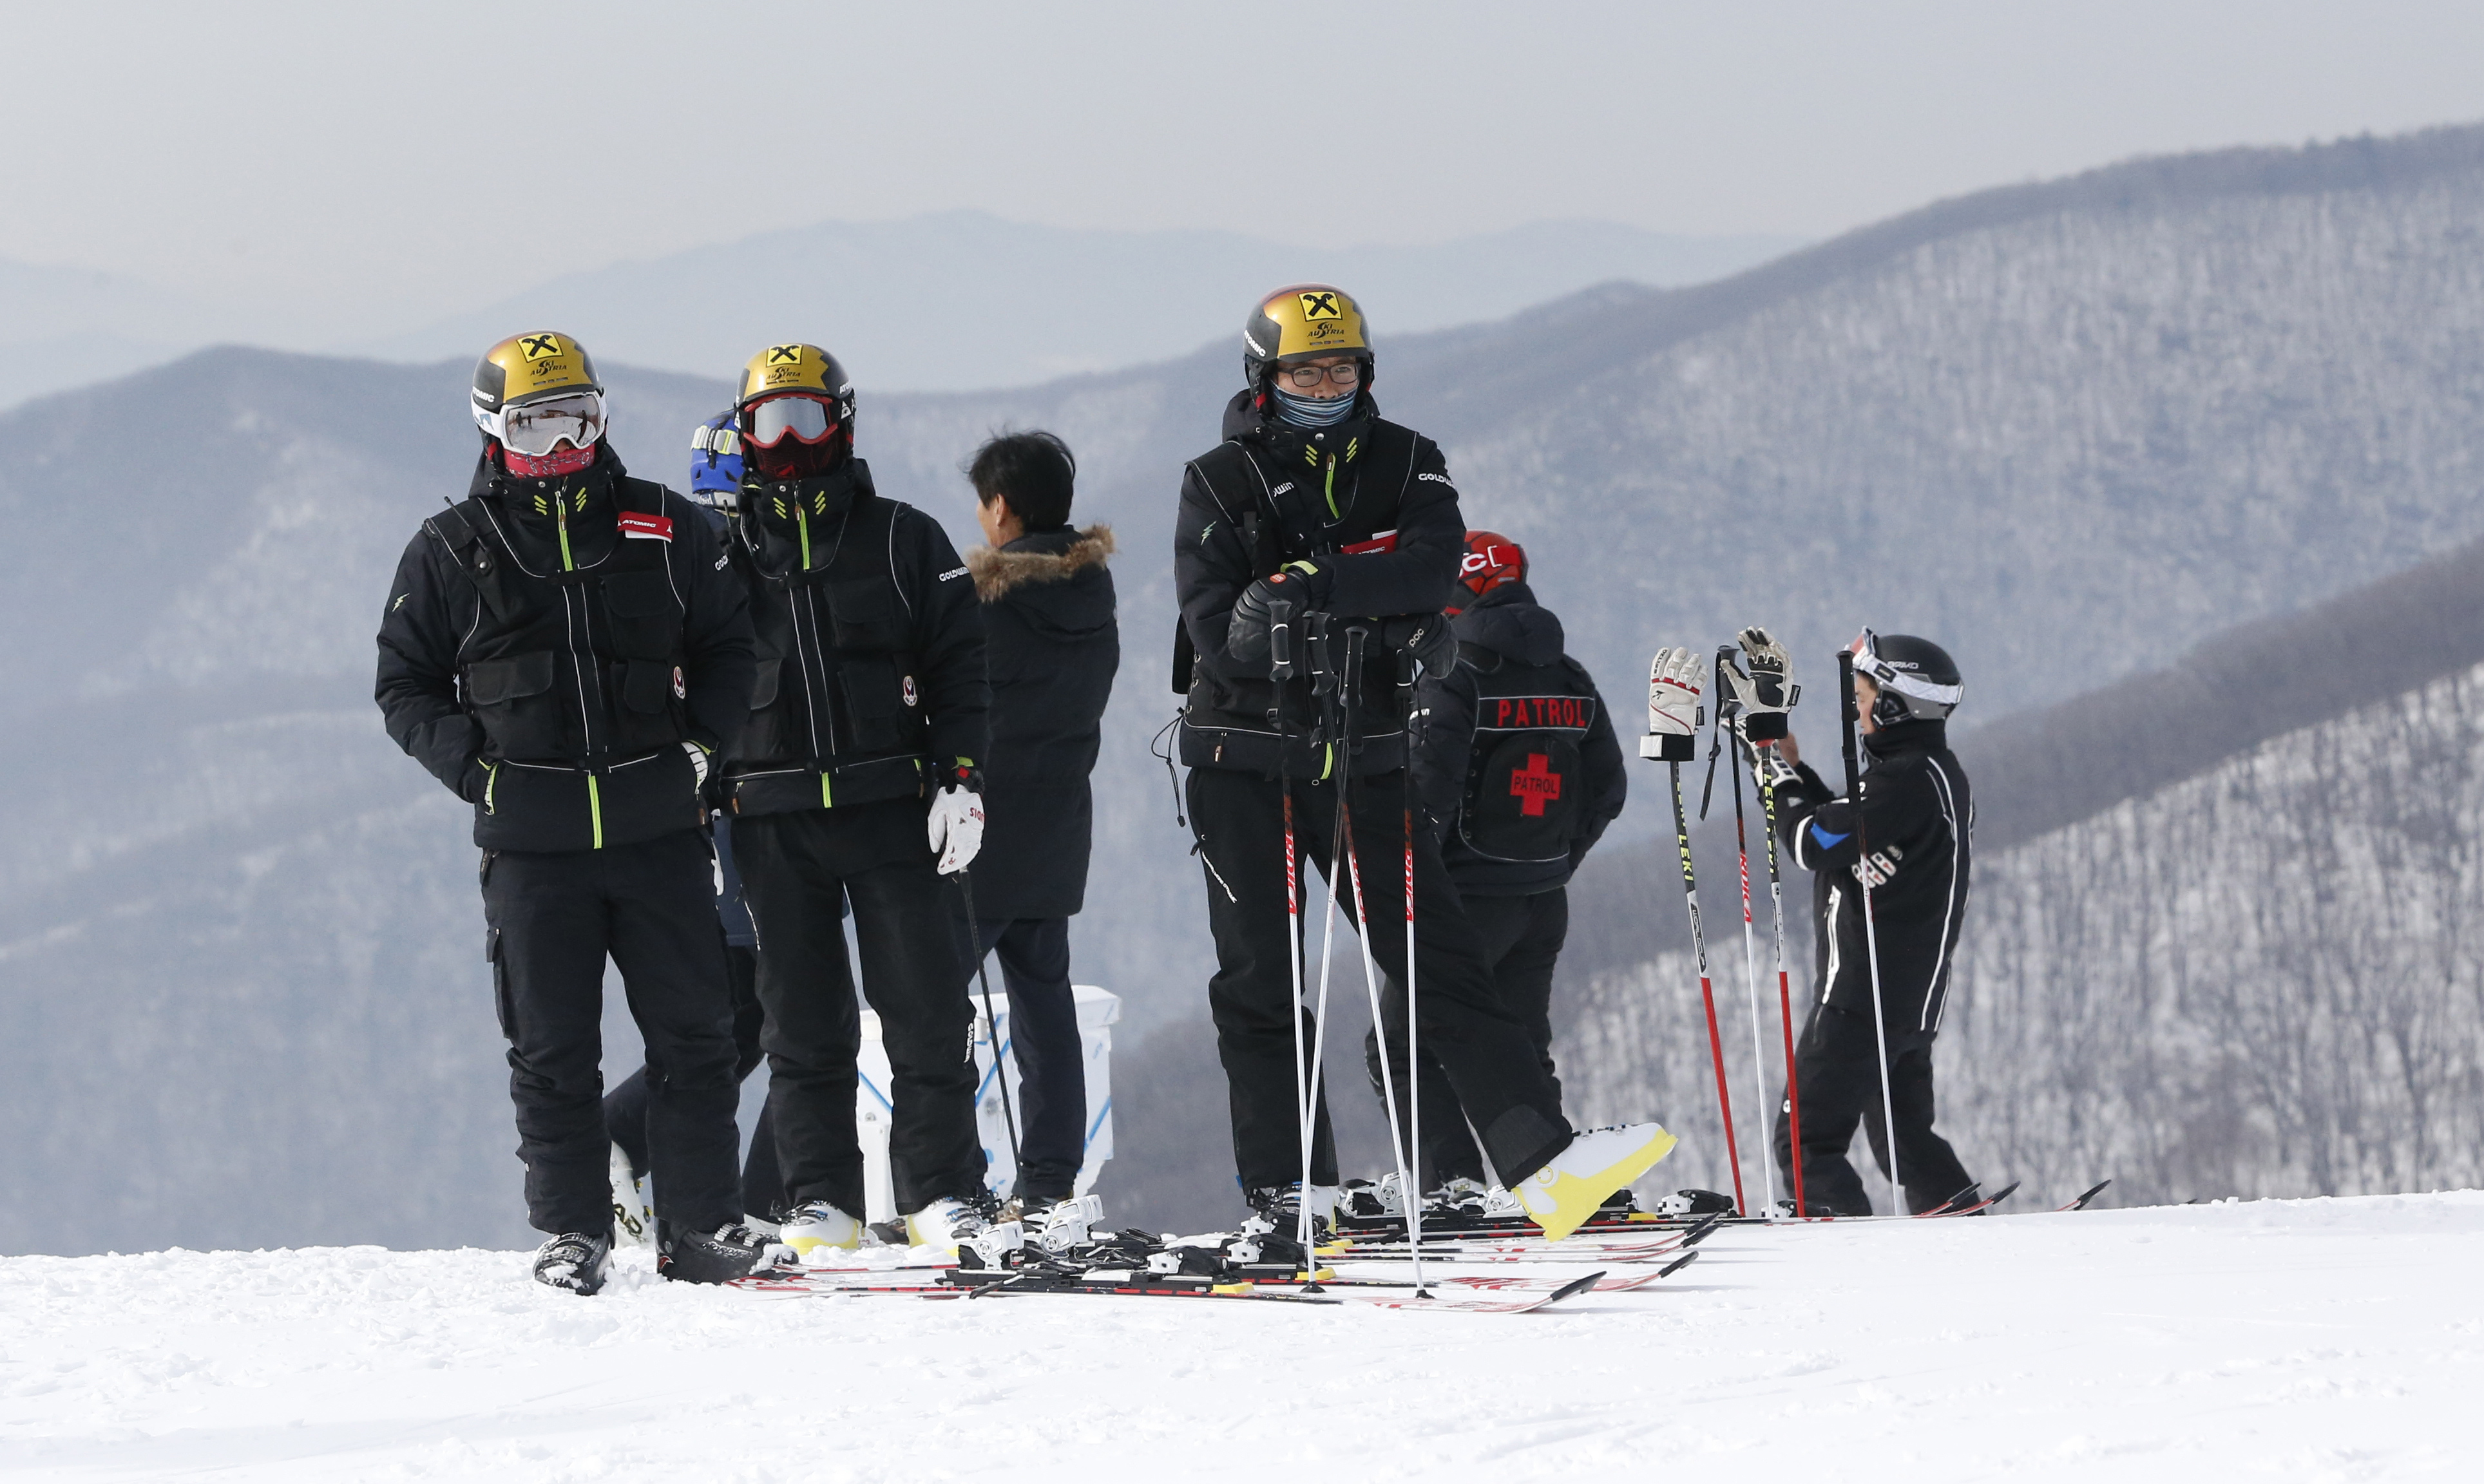 In this Friday, Jan. 22, 2016 photo, Ski course patrols stand at the top of the ski slope which will be the training venue for the upcoming official Test Event of the Pyeongchang 2018 Winter Olympics at the Jeongseon Alpine Centre in Jeongseon, South Kore